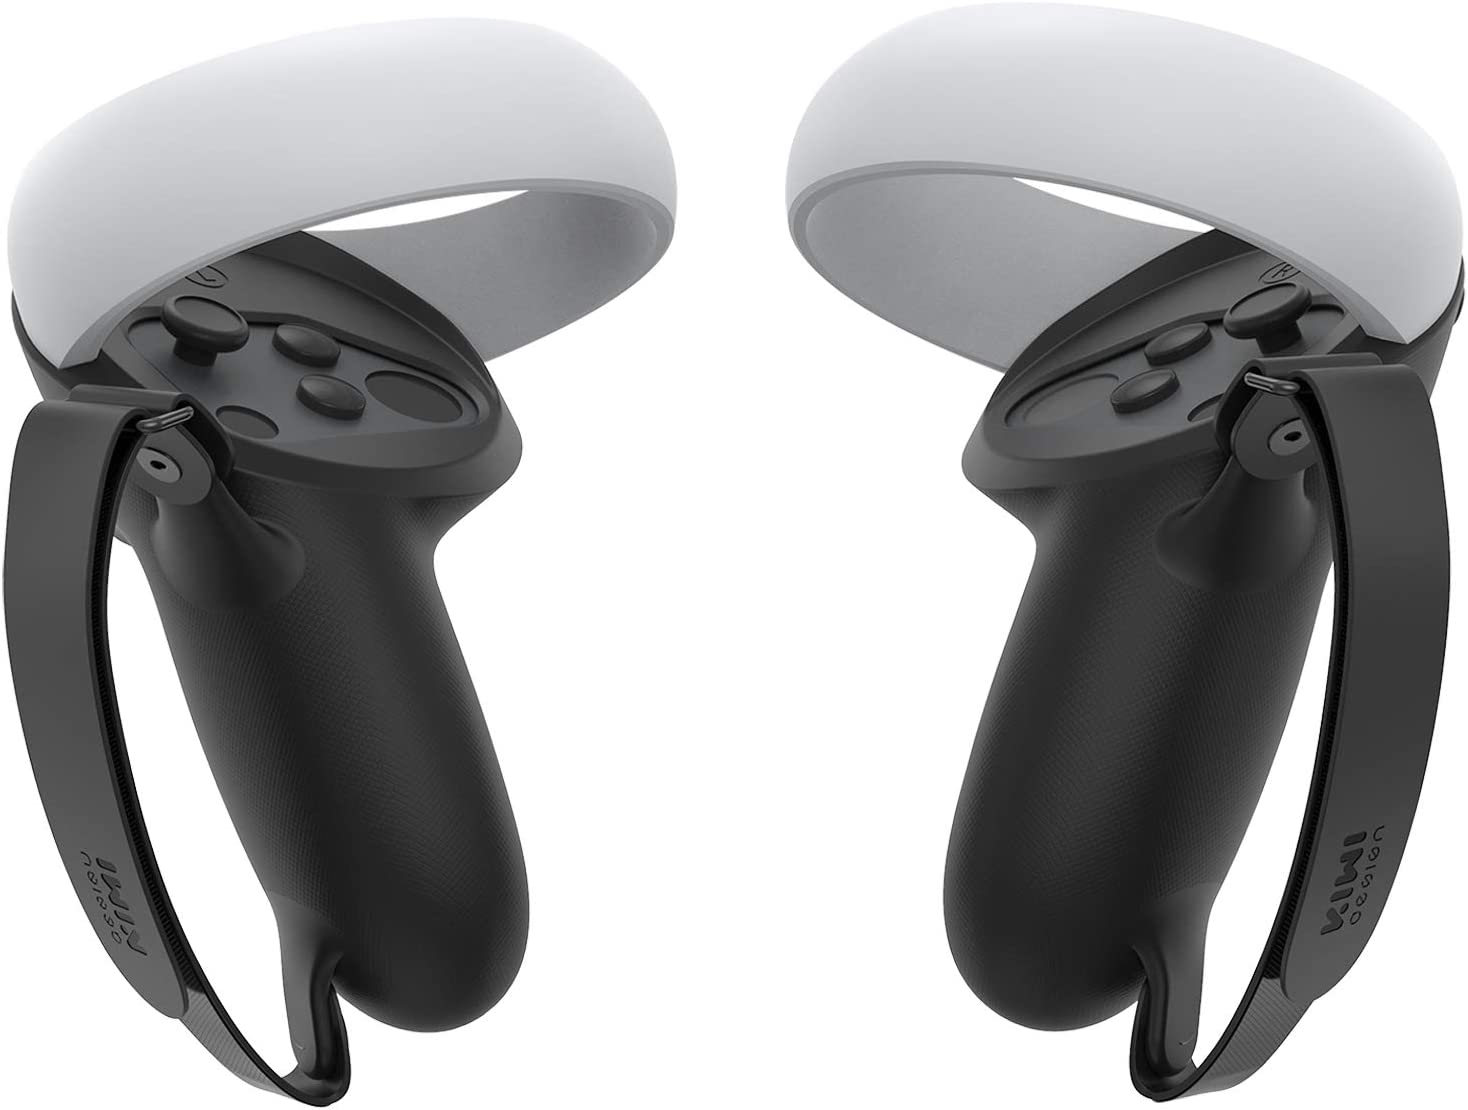 KIWI design Silicone Grip Cover for Oculus Quest 2 Touch Controller Grip Accessories Anti-Throw VR Handle Protective Sleeve (Black, 1 Pair)